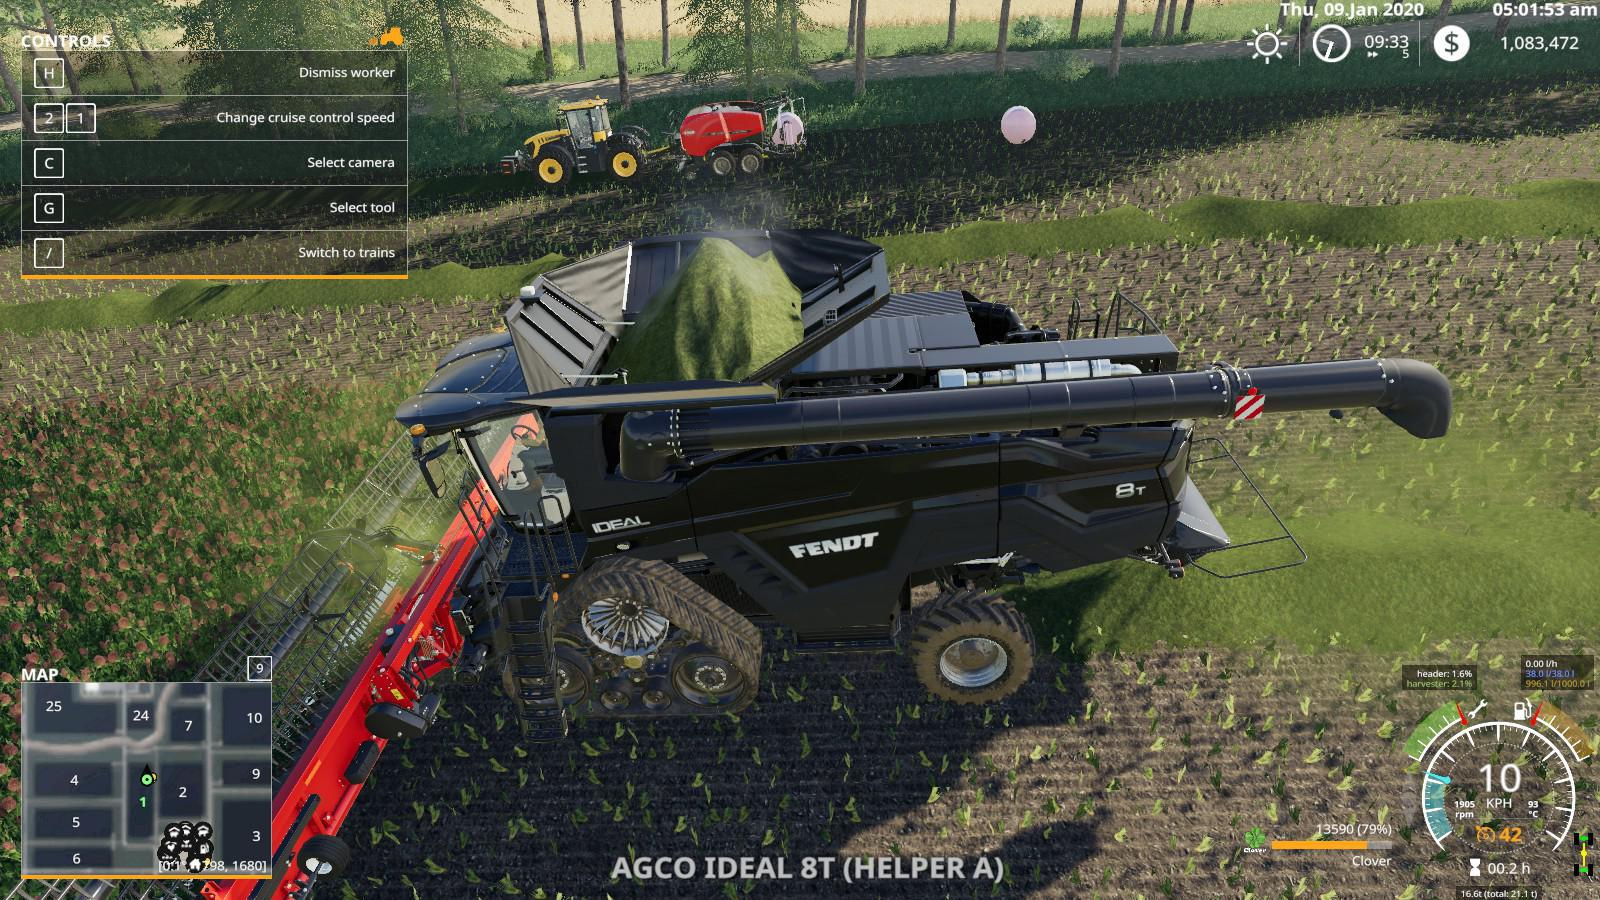 Jnj My Store >> FS19 - Old Timers Farm Map V1.3 | Farming Simulator 19 ...